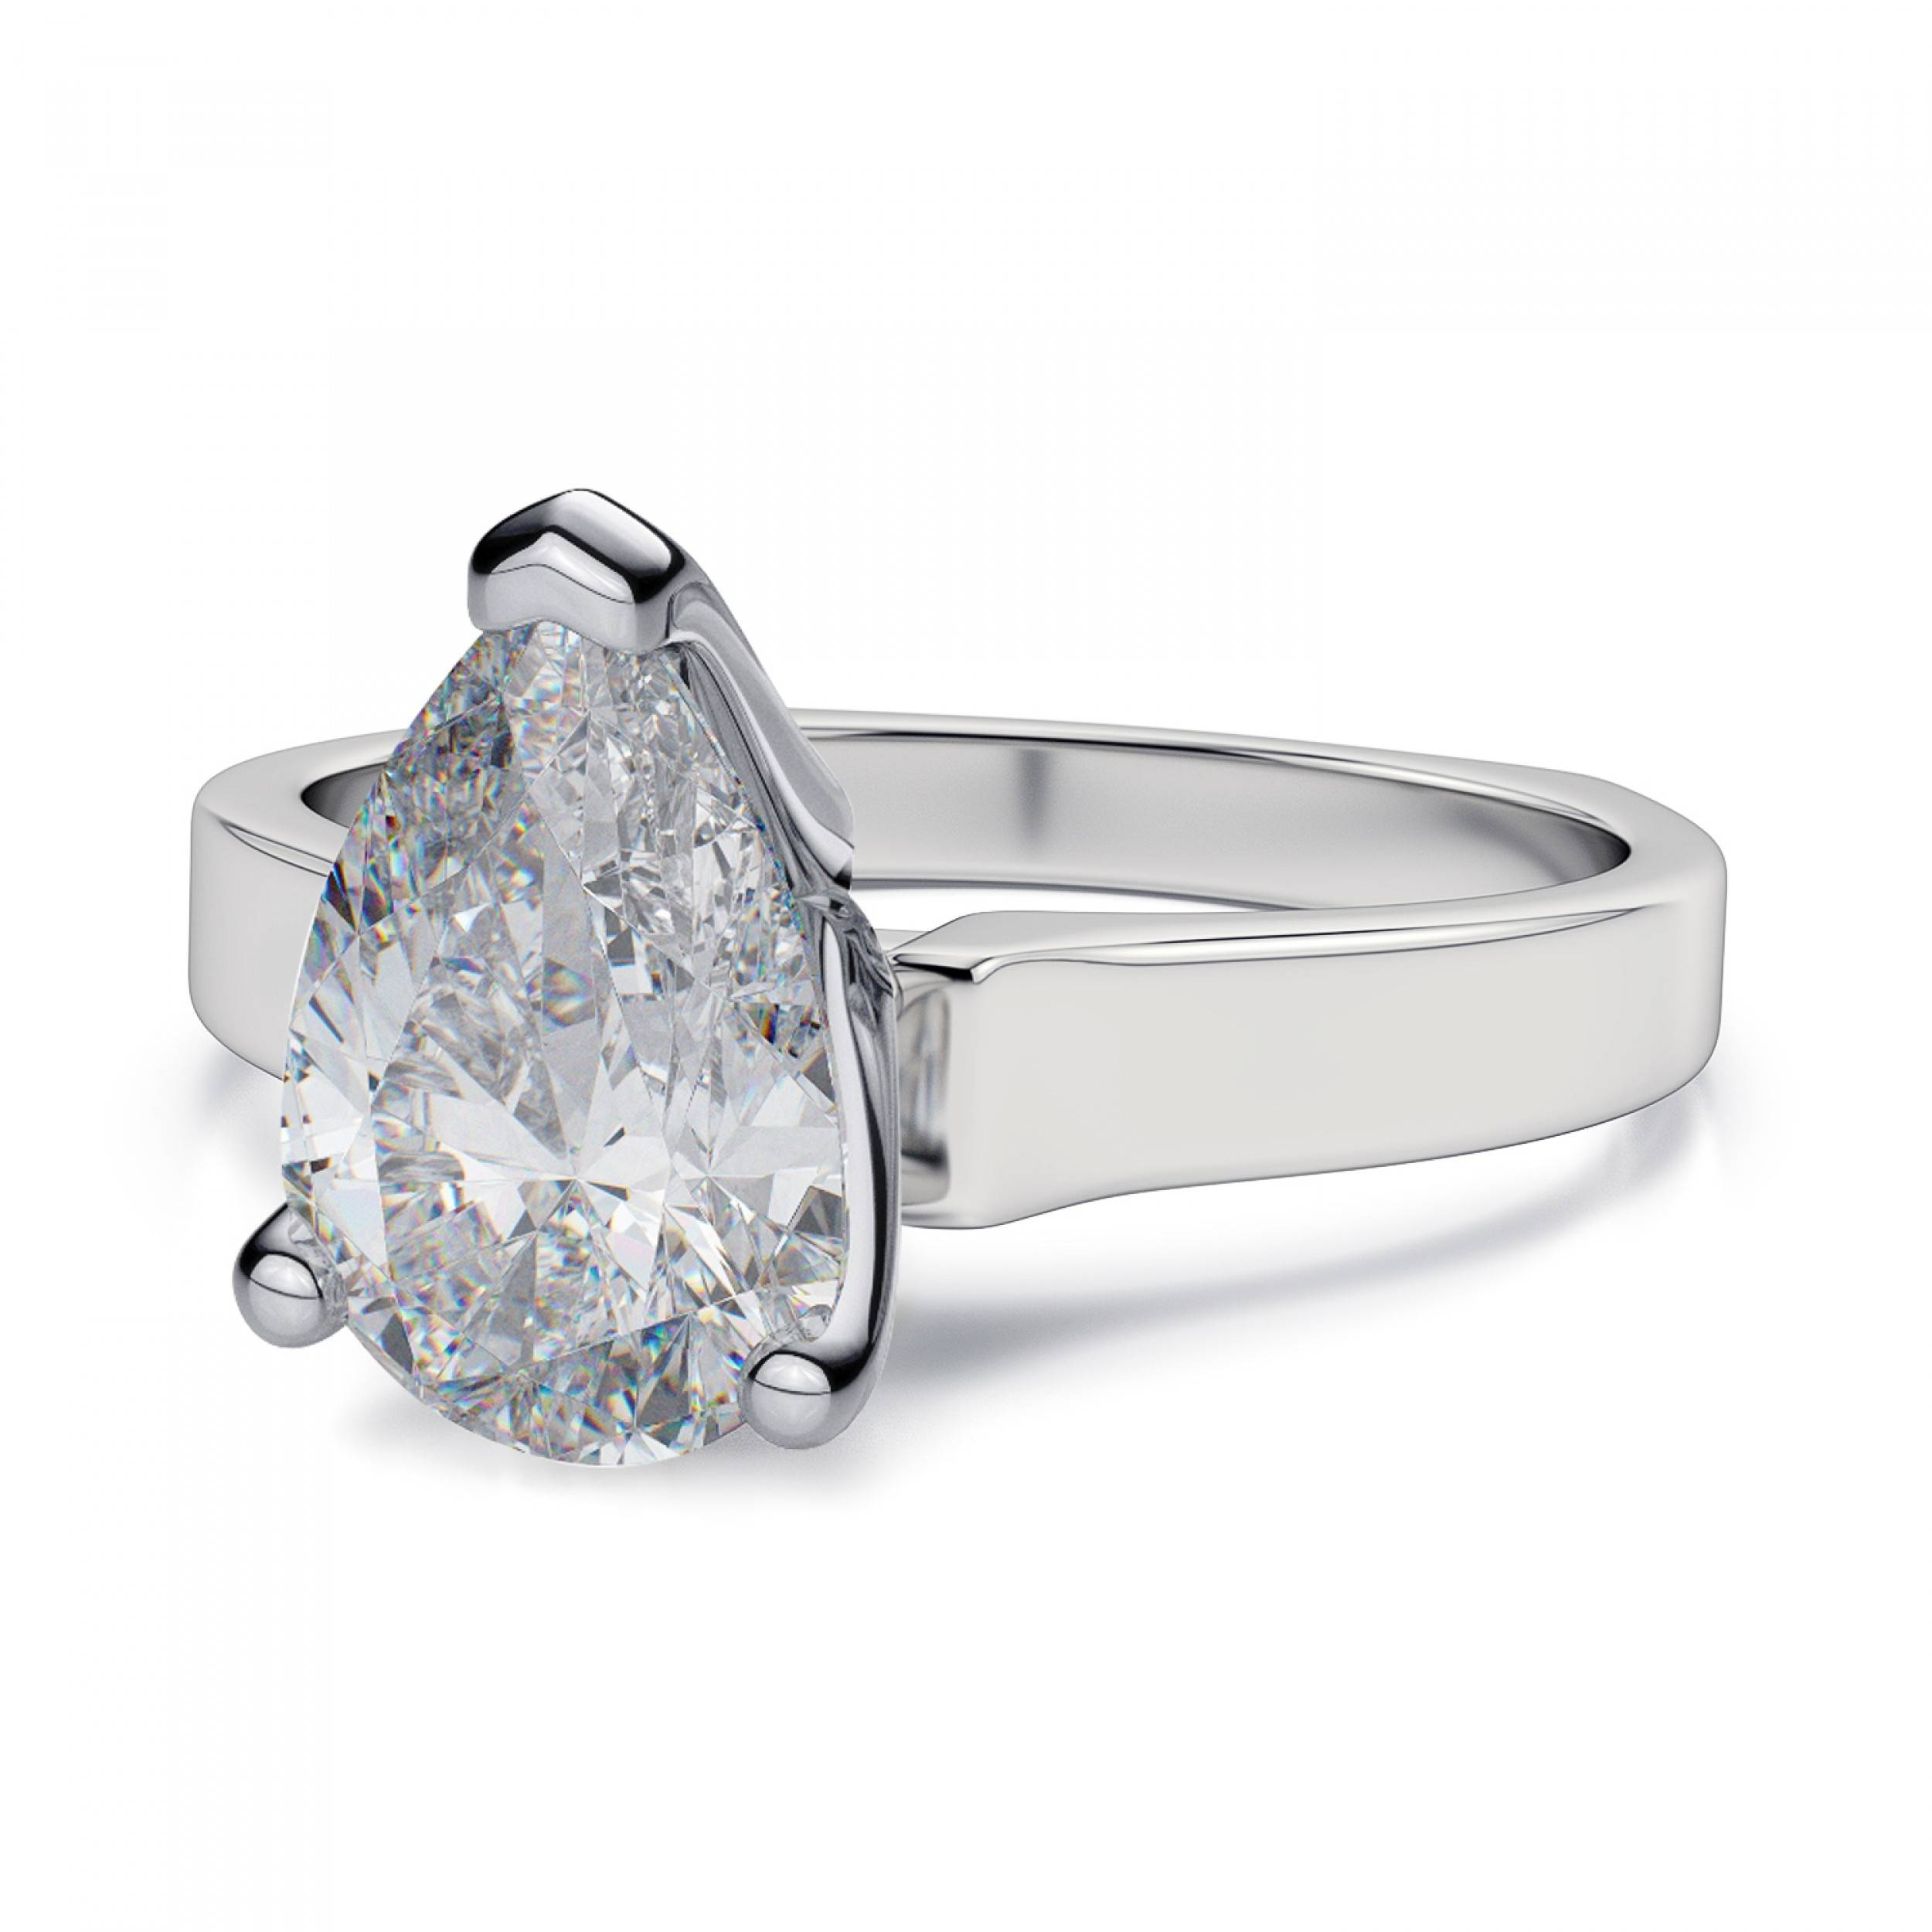 Shank Cathedral Pear Diamond Ring – Platinum Pertaining To Pear Bezel Engagement Rings (View 15 of 15)